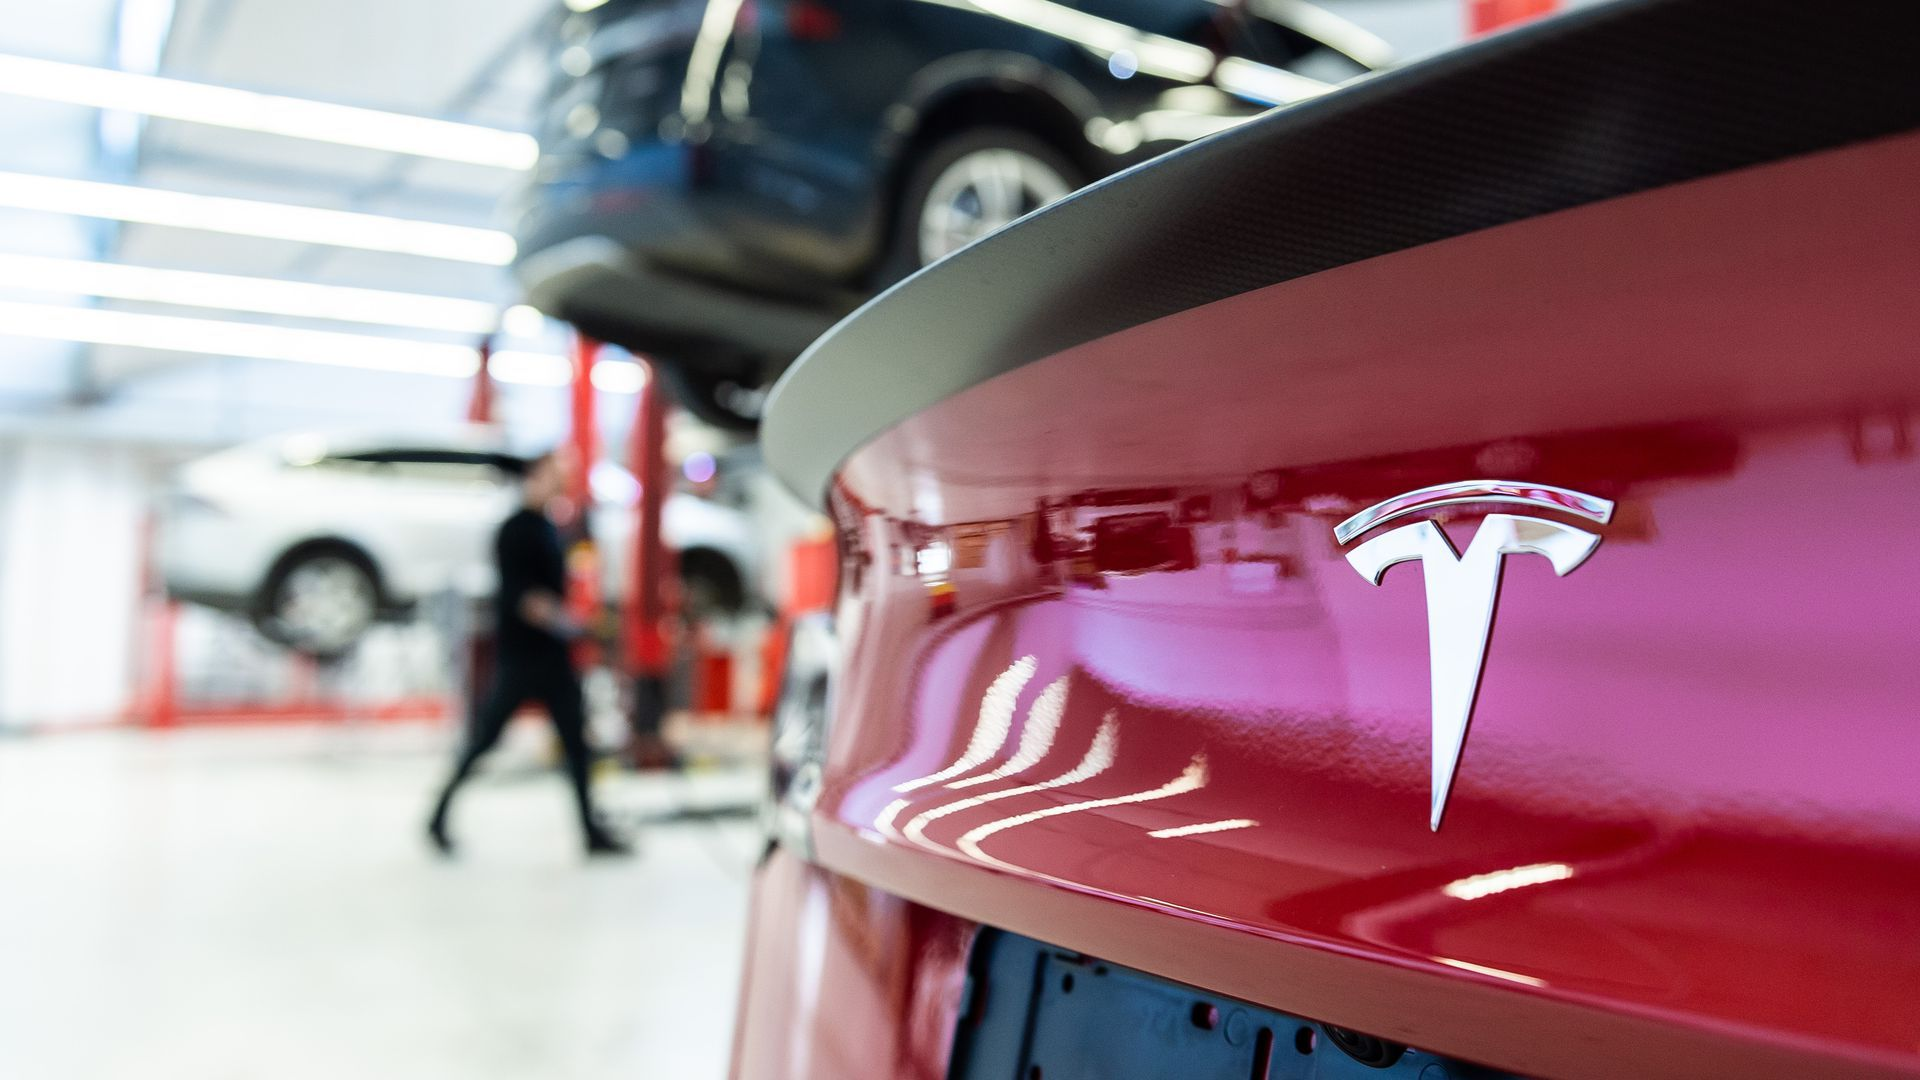 Photo of the trunk of a Tesla vehicle